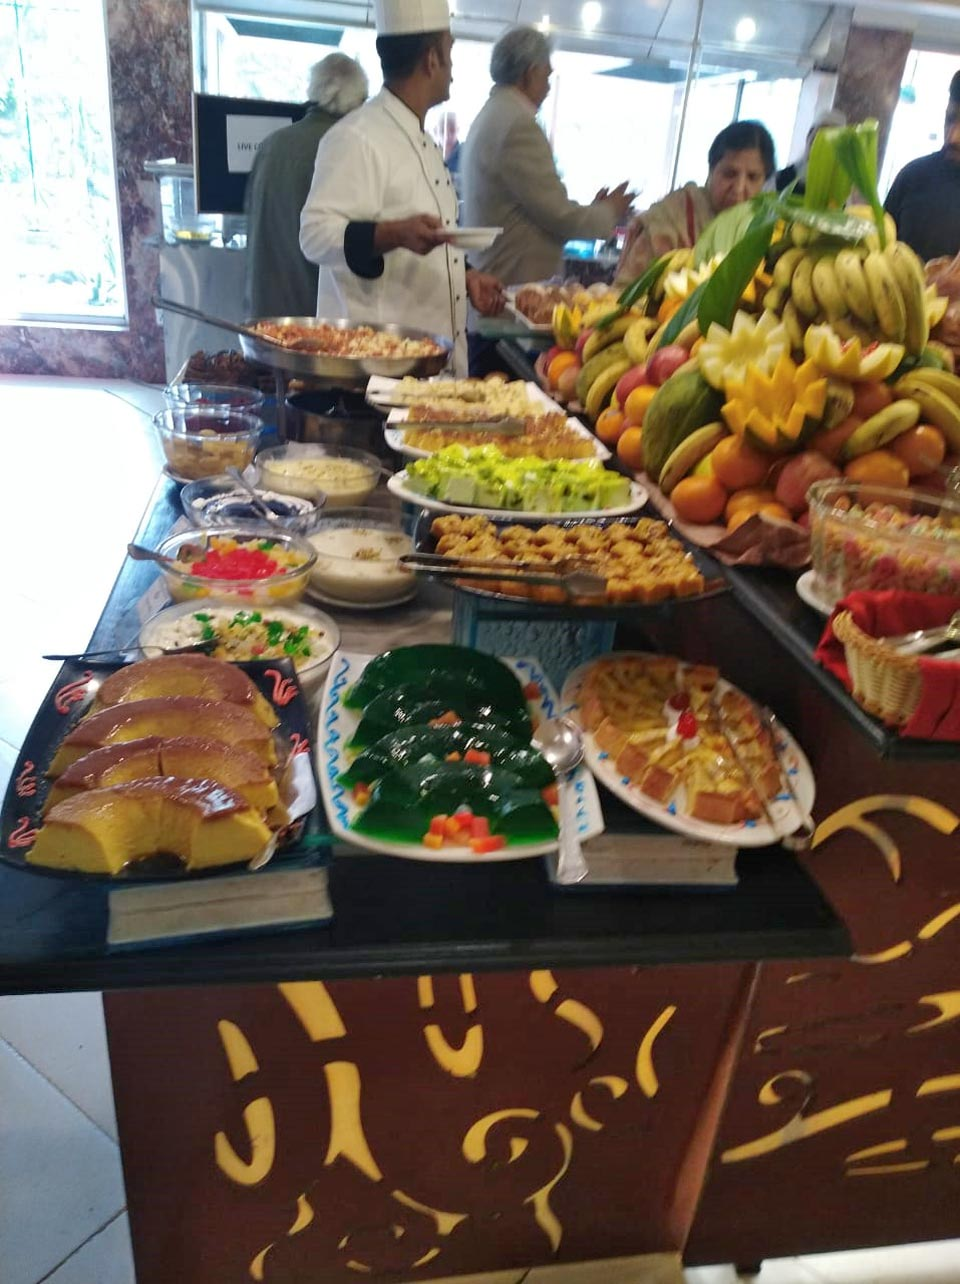 The dessert bar at the dining hall